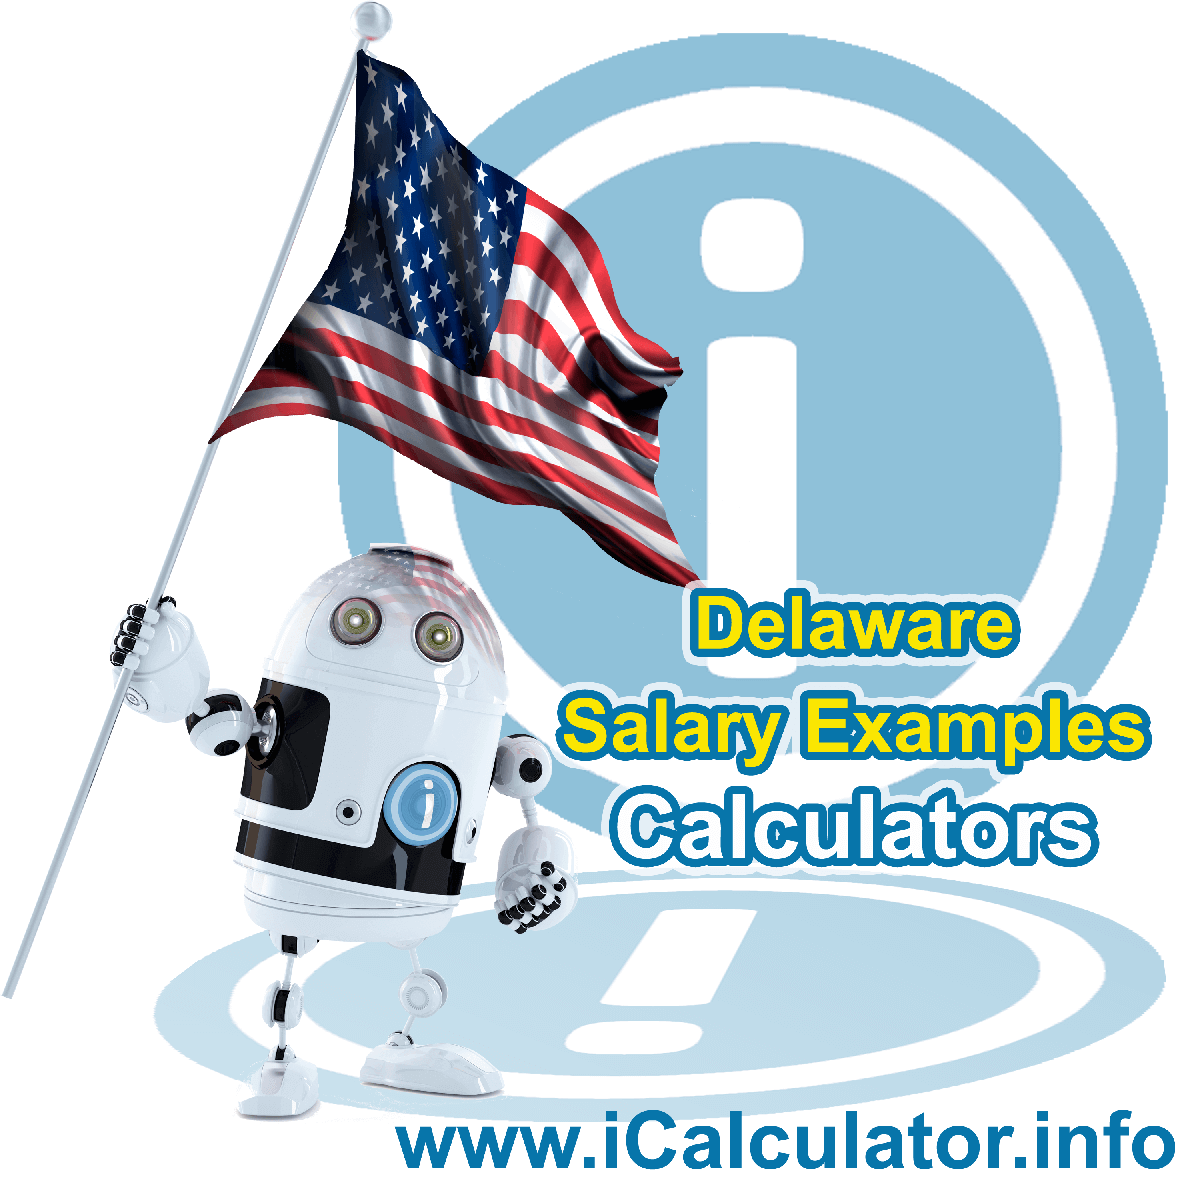 Delaware Salary Example for $280.00 in 2020 | iCalculator | $280.00 salary example for employee and employer paying Delaware State tincome taxes. Detailed salary after tax calculation including Delaware State Tax, Federal State Tax, Medicare Deductions, Social Security, Capital Gains and other income tax and salary deductions complete with supporting Delaware state tax tables